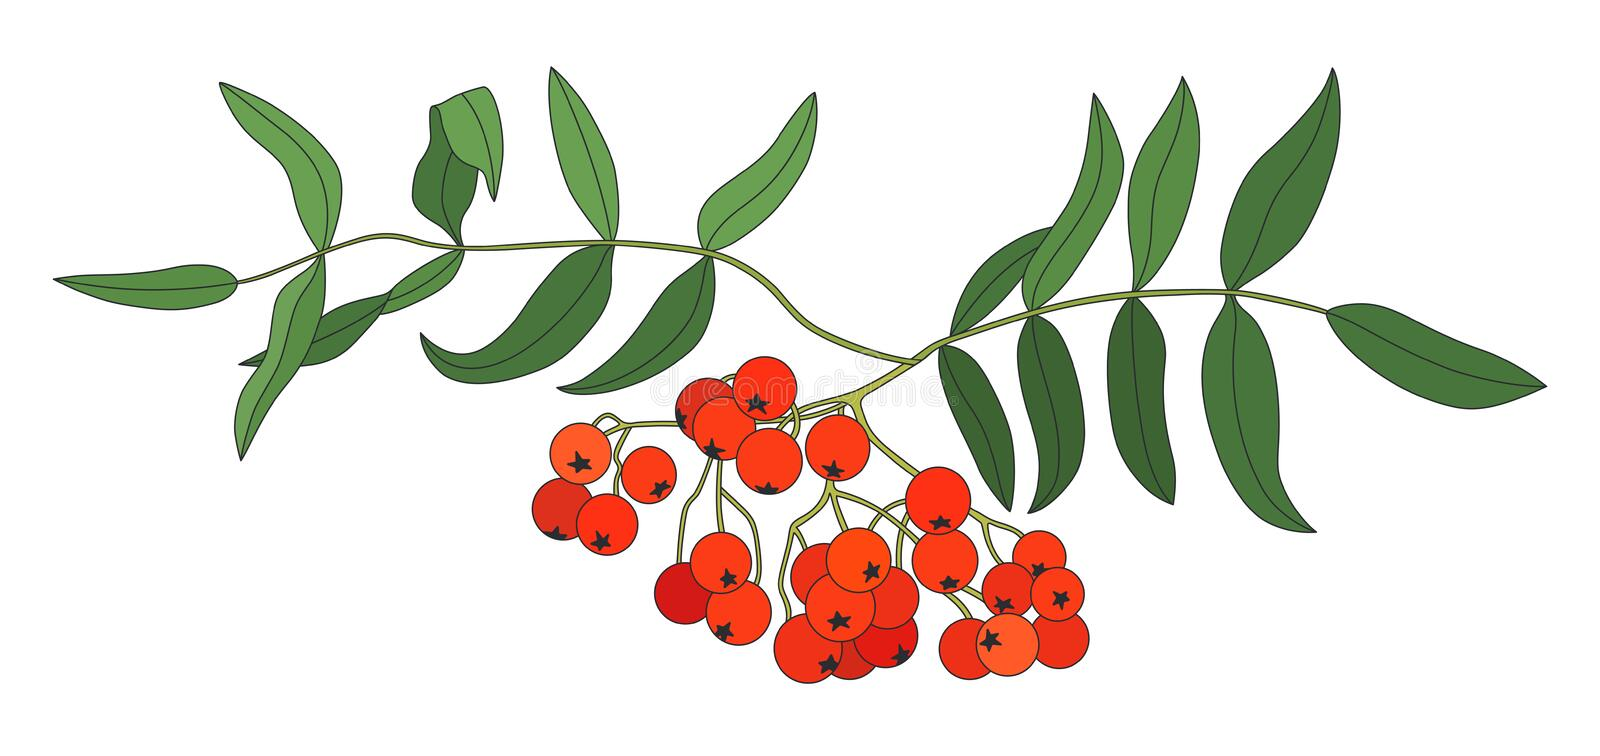 Vector illustration of rowan branch in color. Isolated on white background. Can be used for graphic design, textile design or web design vector illustration